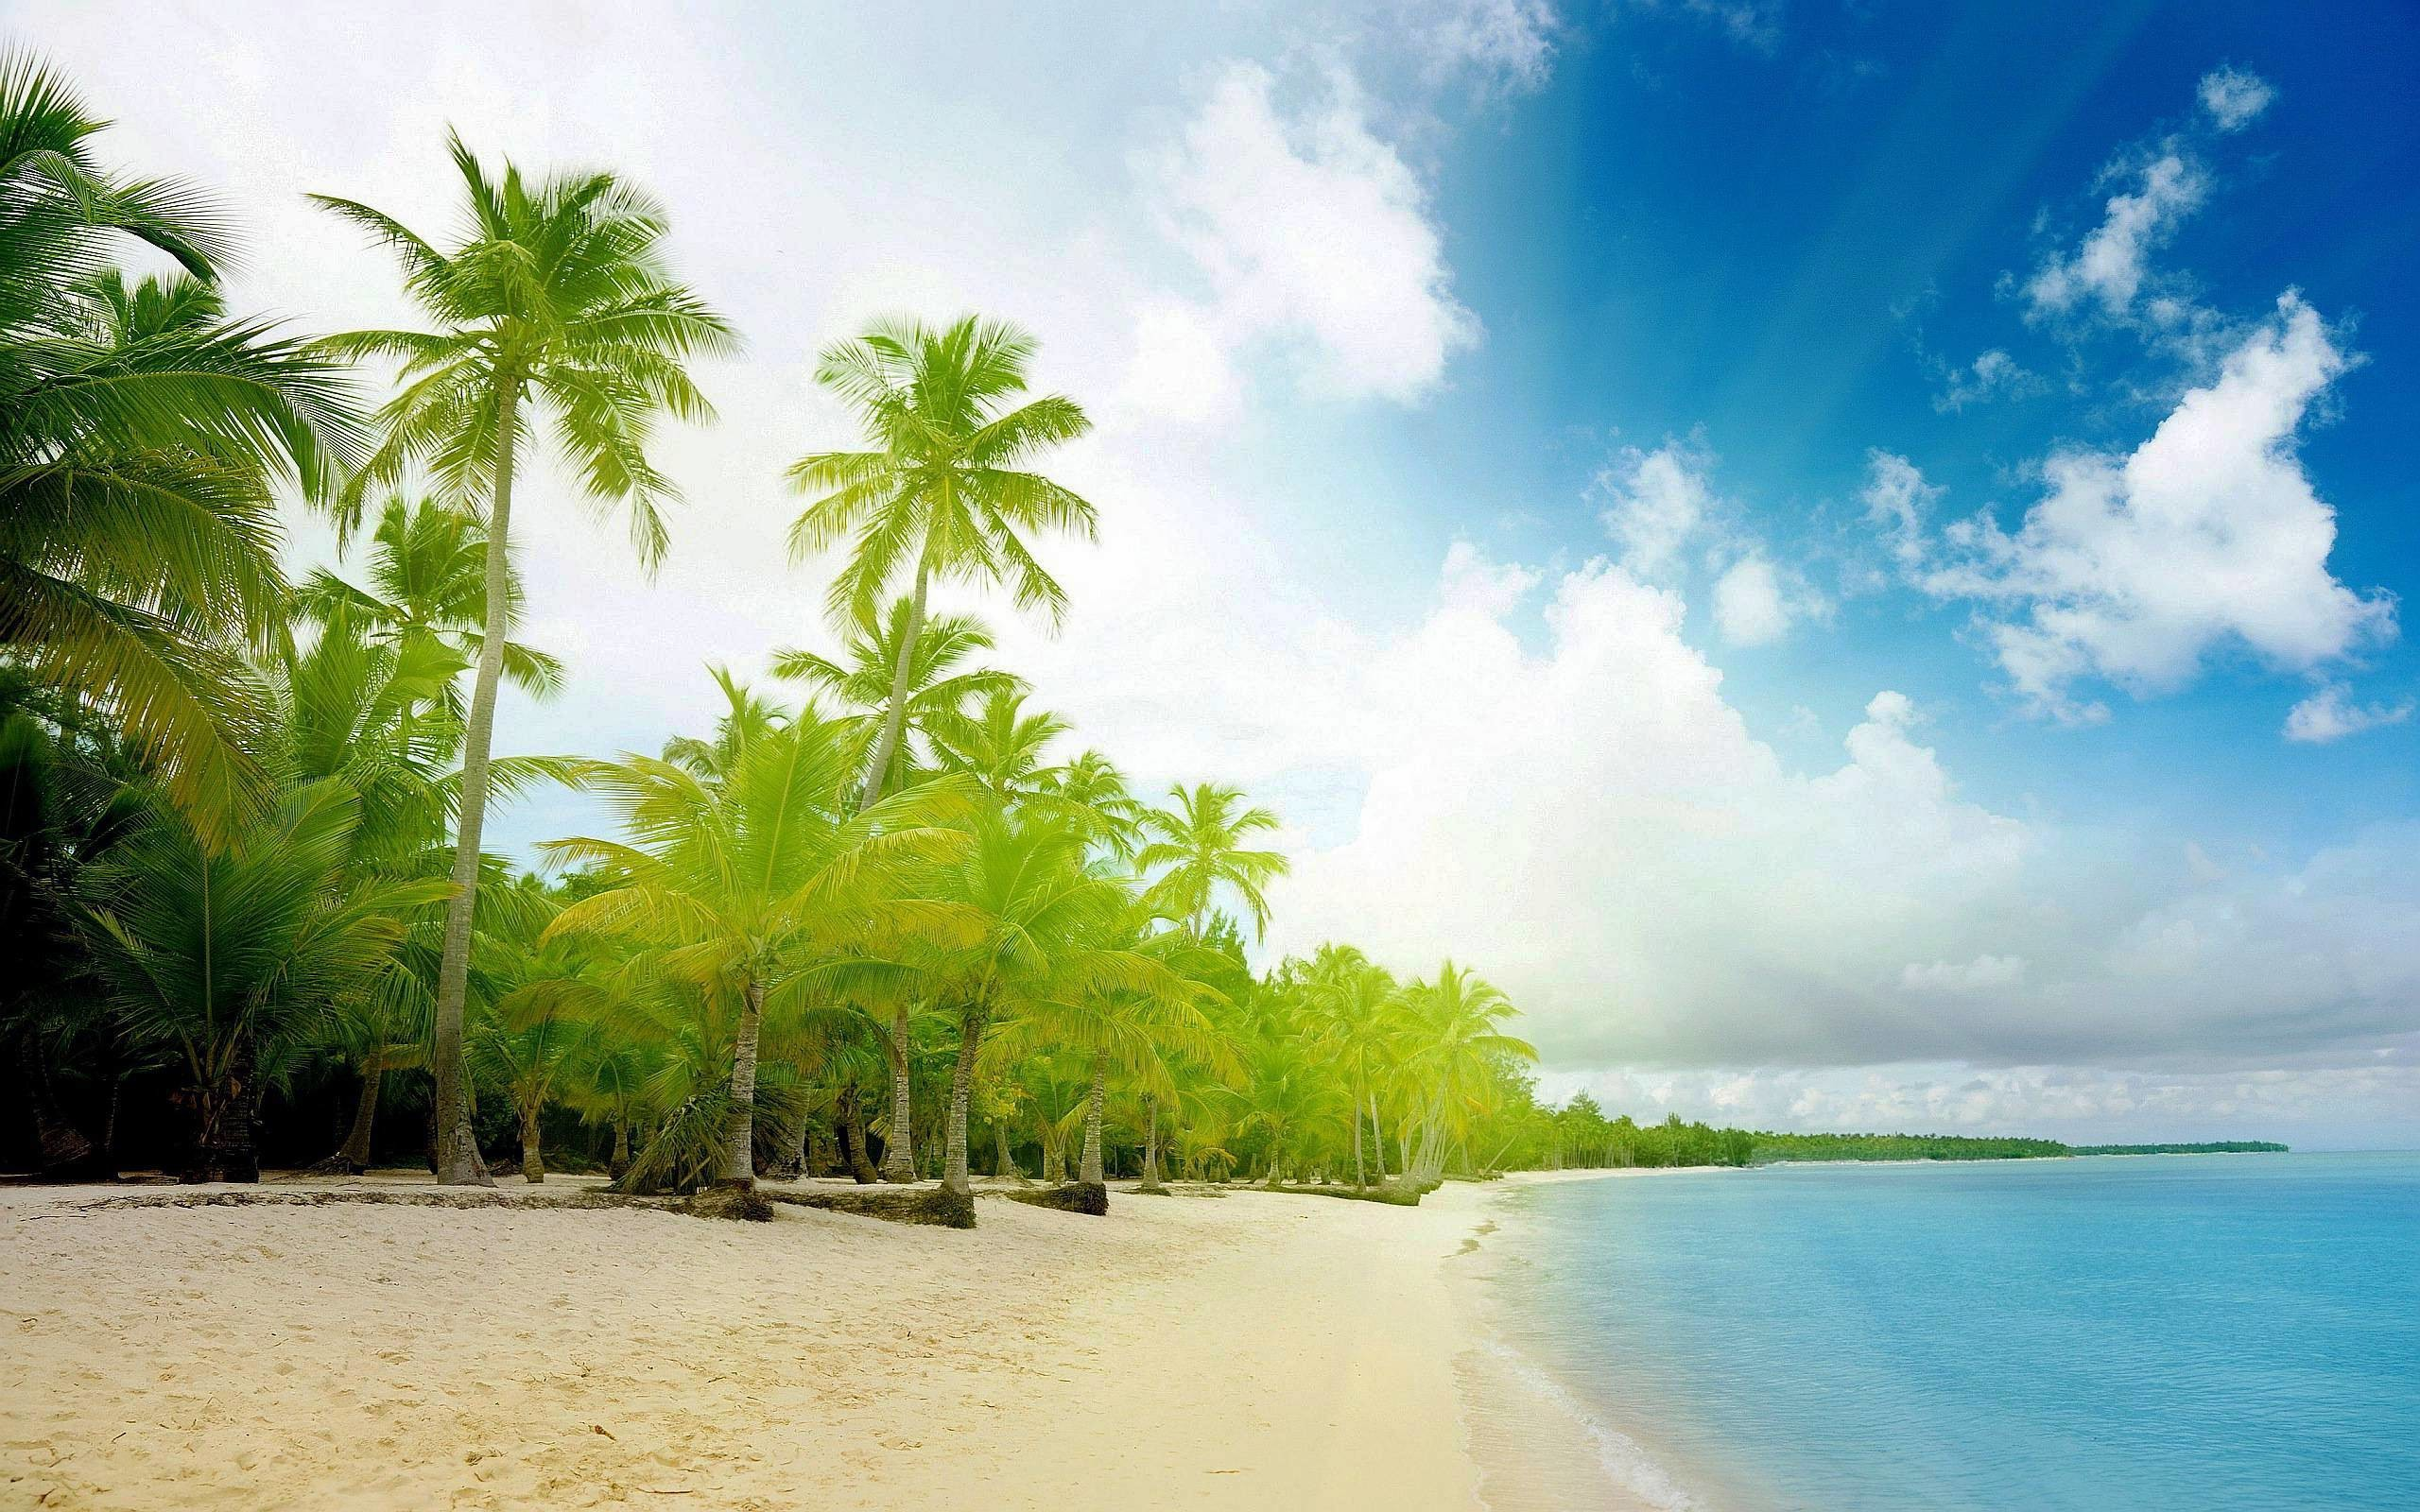 Exotic Beaches Wallpapers Hd 1080P 12 HD Wallpapers   aladdino.